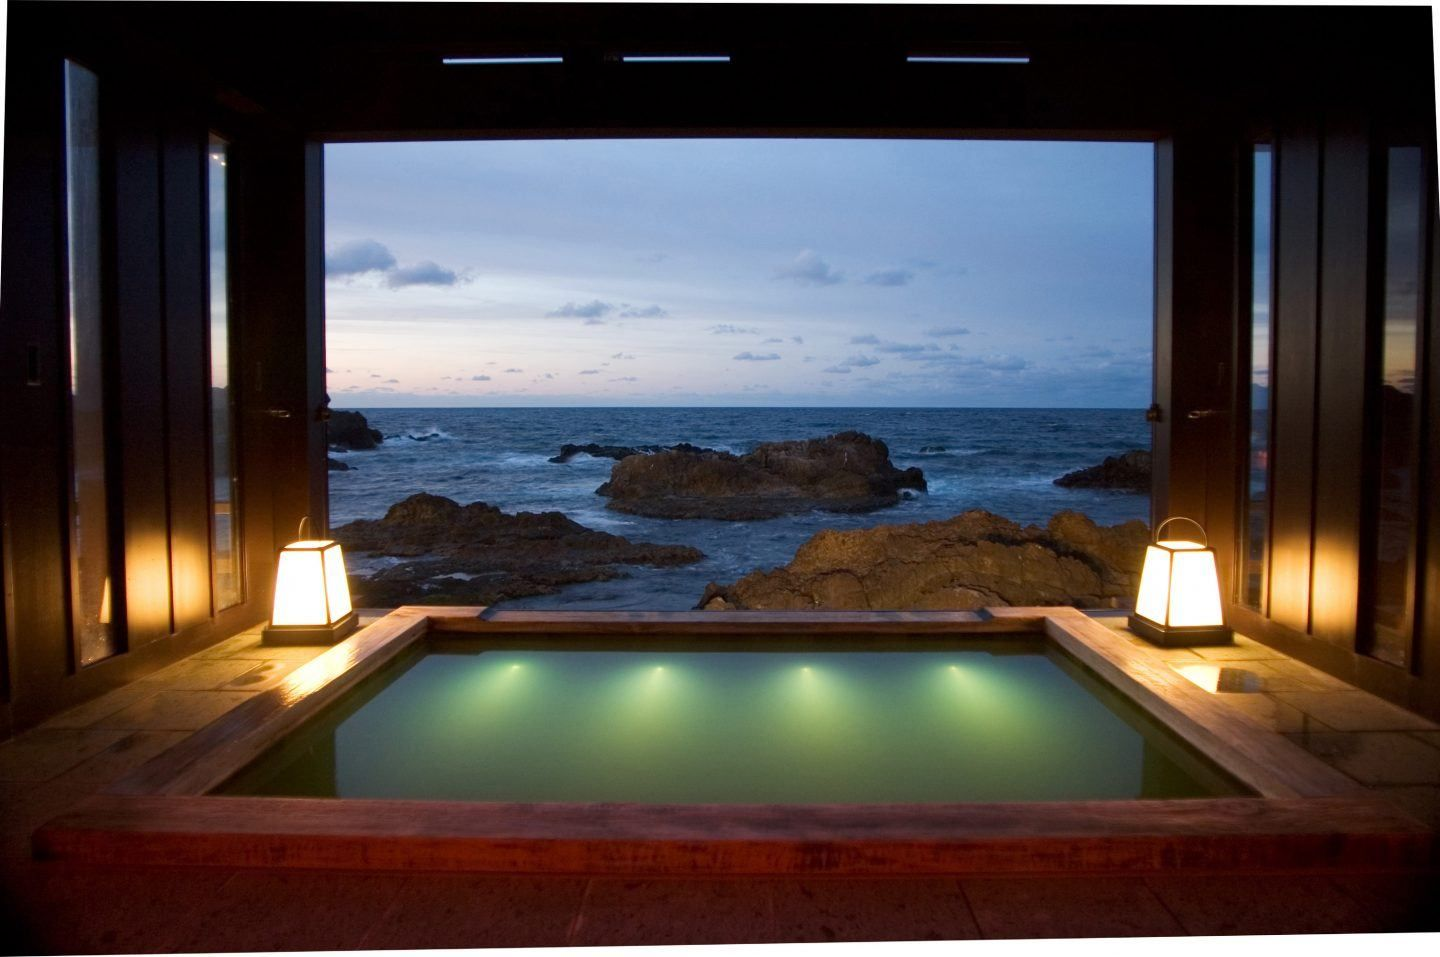 Luxury Japanese ryokan: 7 of the best - InsideJapan Tours | Luxury